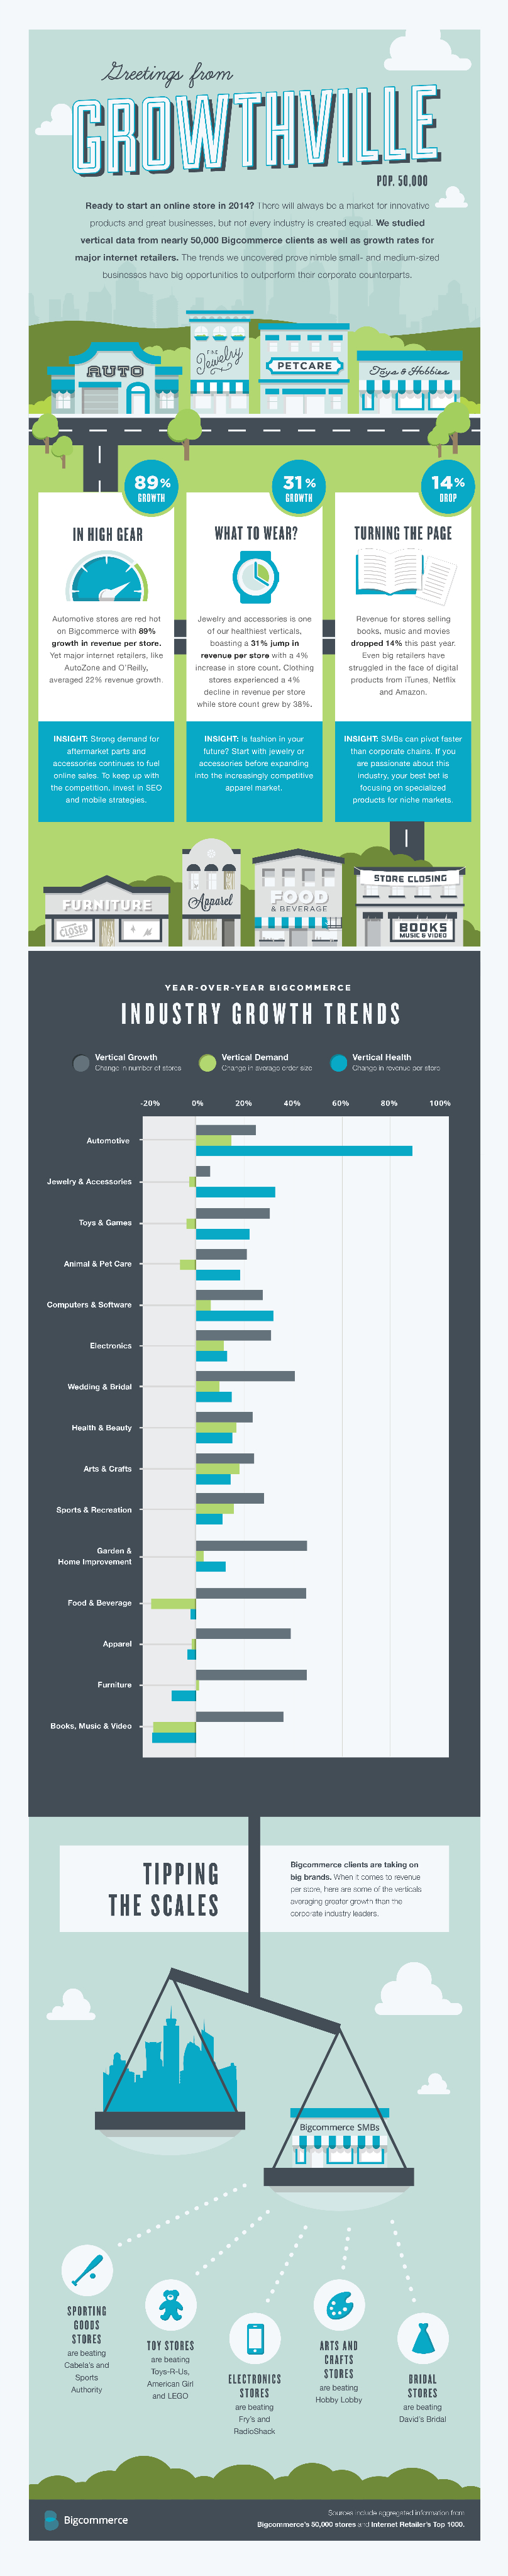 Most successful e-commerce sectors infographic